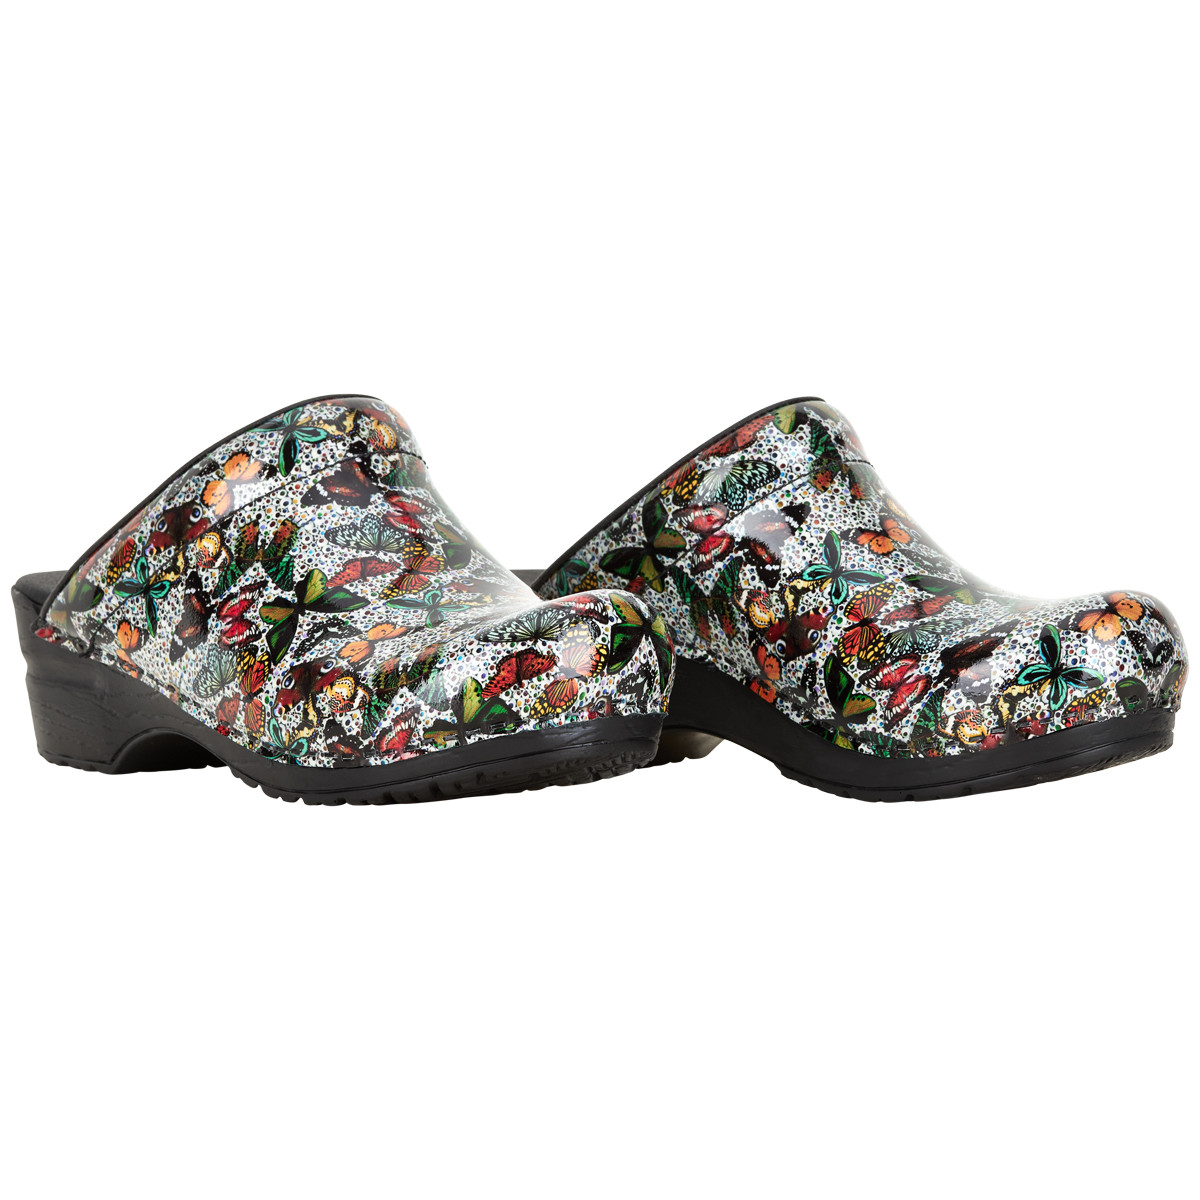 SANITA ISALENA CLOGS 457618 25